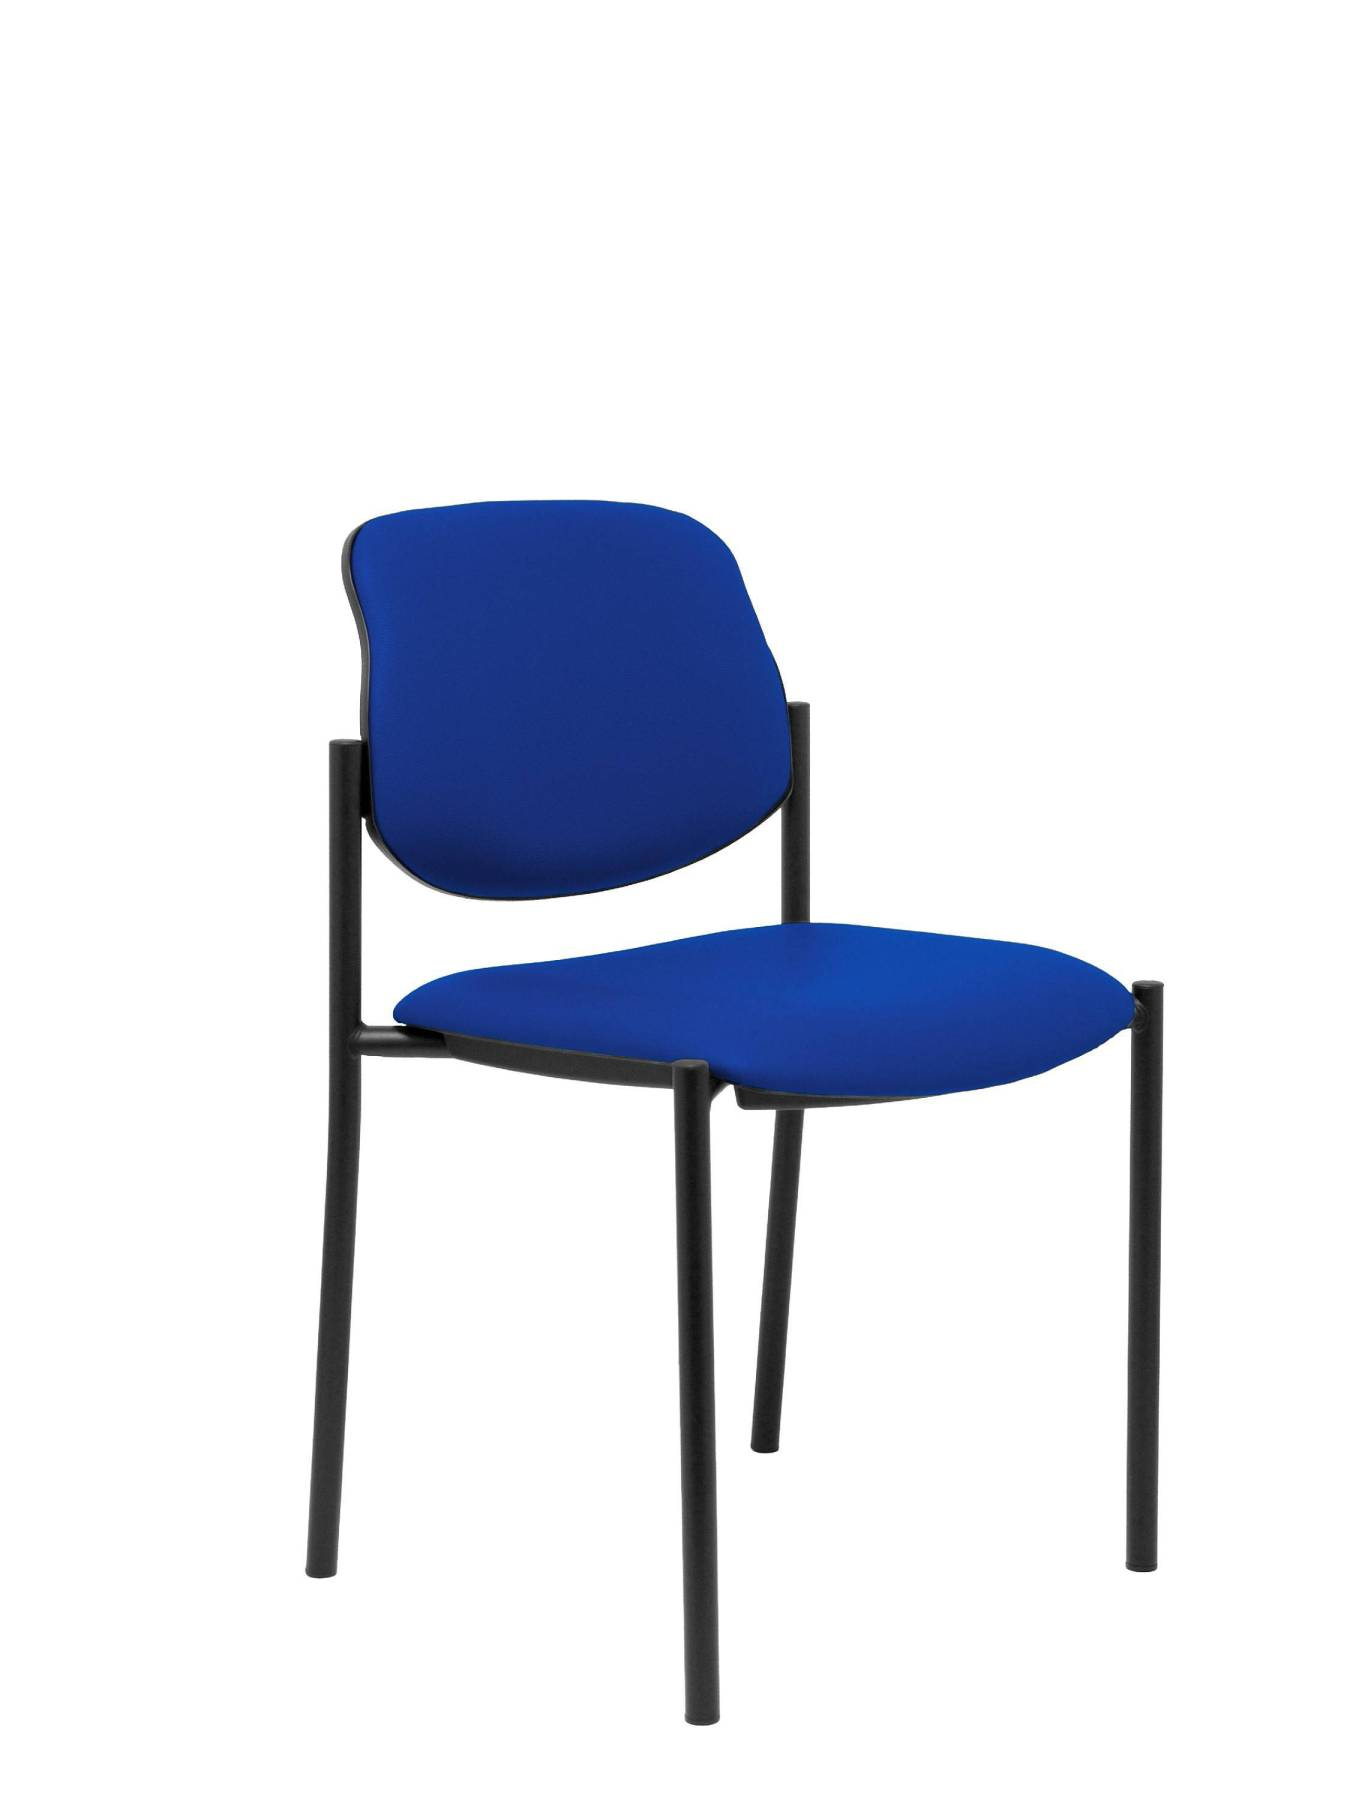 Visitor Chair 4's Topsy And Estructrua Negro-up Seat And Backstop Upholstered In Tissue Similpiel Color Blue TAPHOLE AND